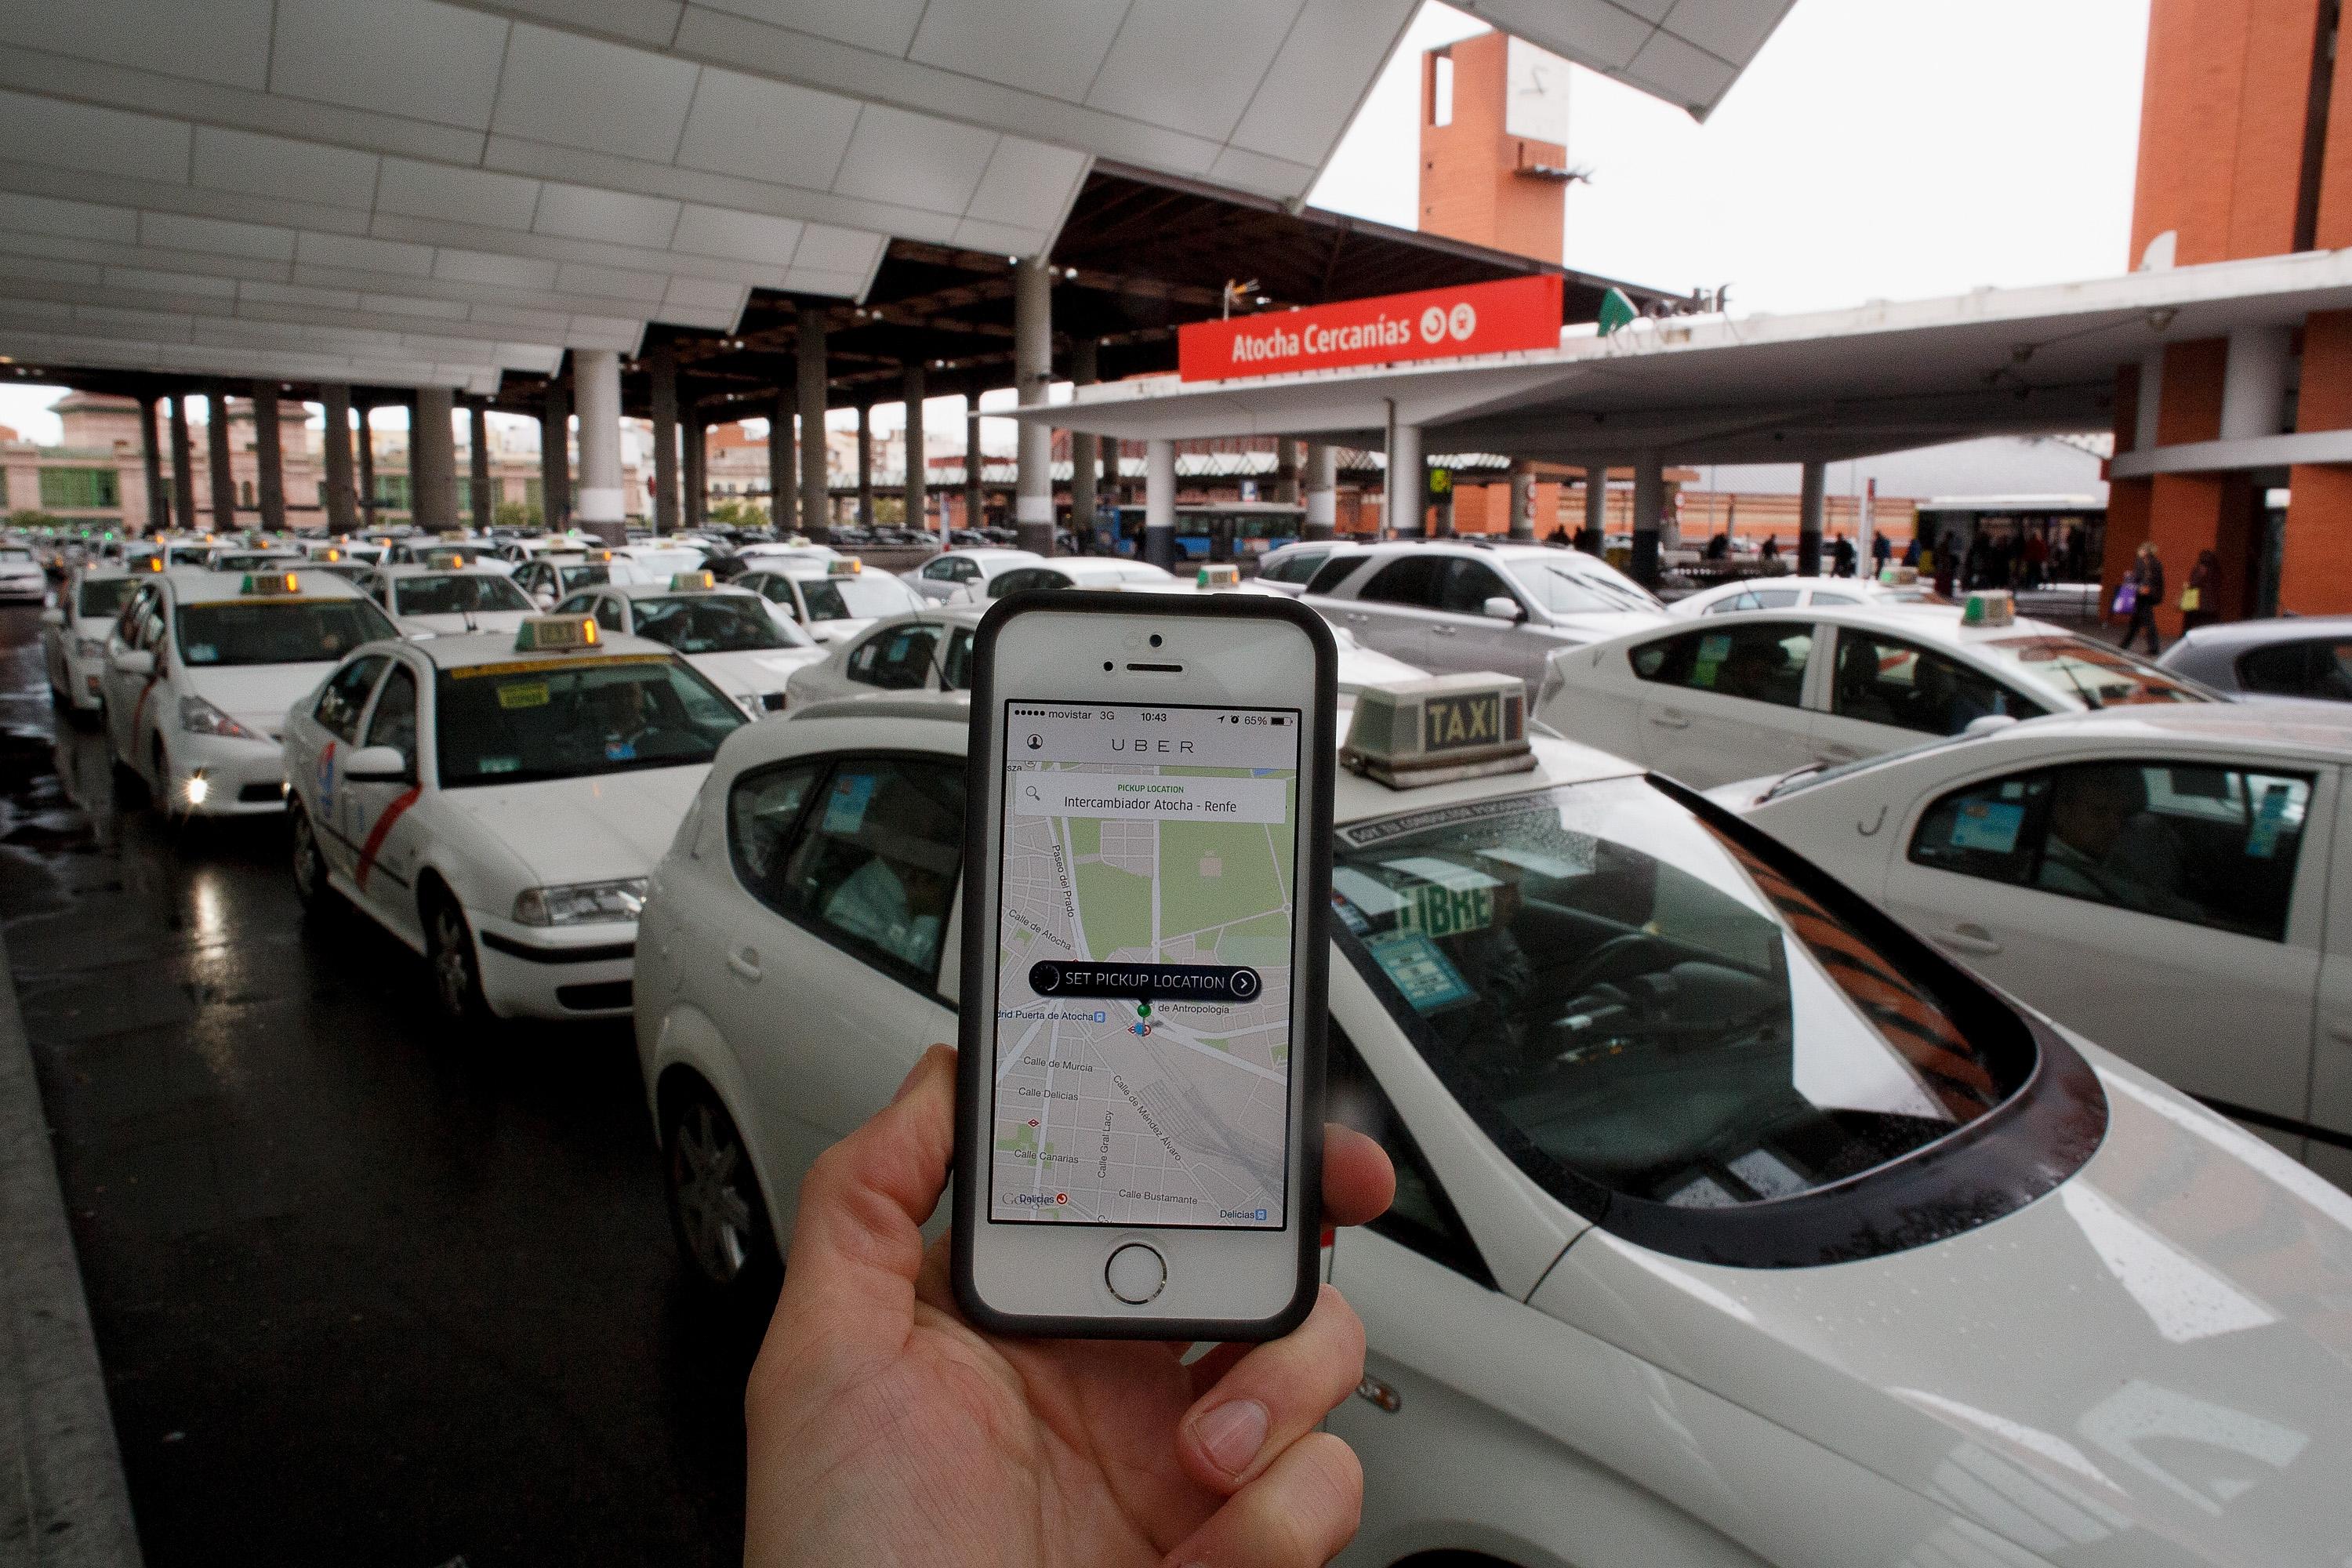 a smartphone screen with the Uber app in front of a train station